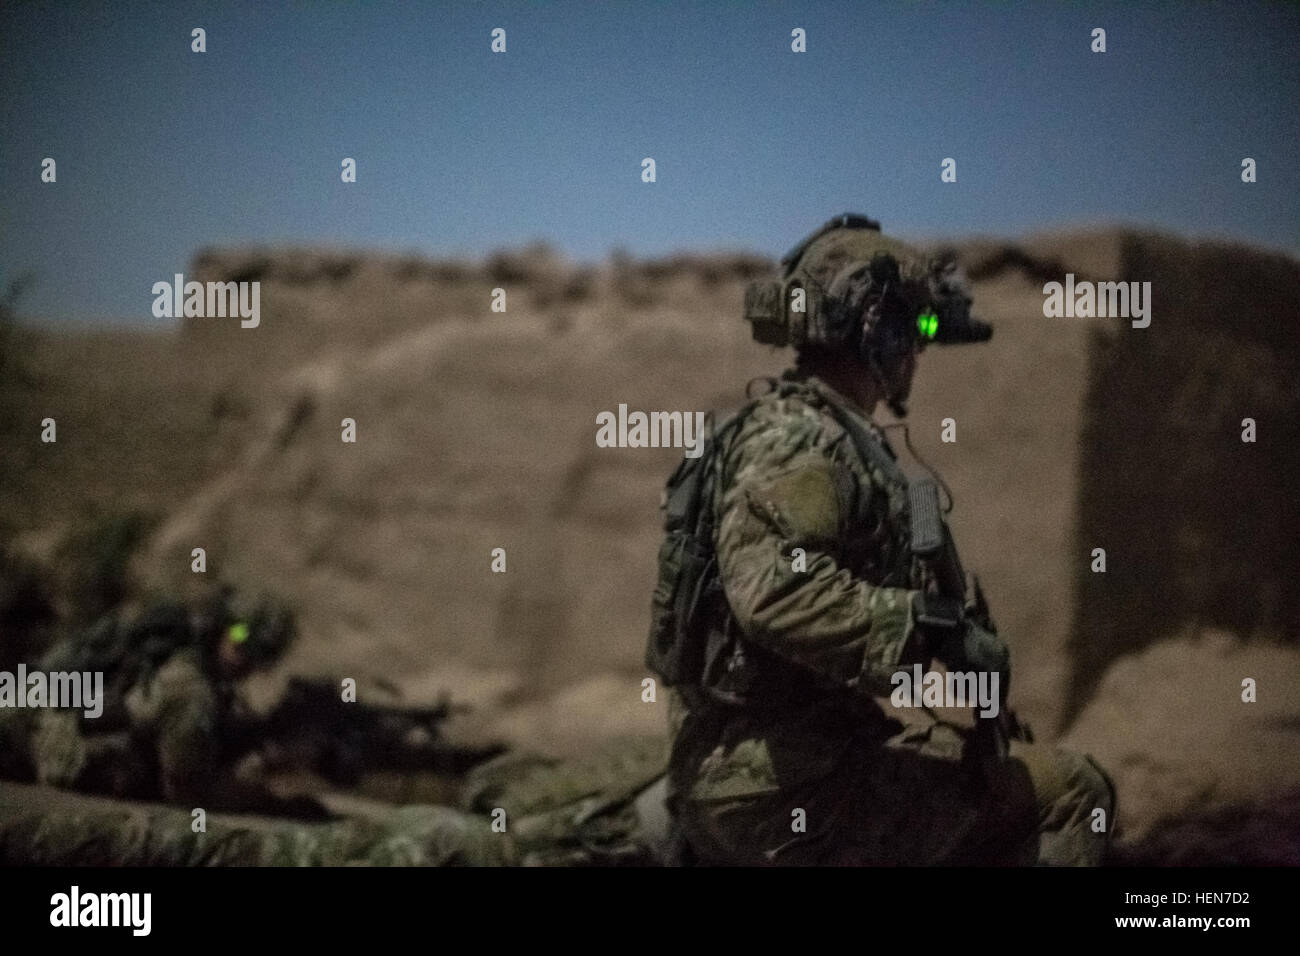 http://c7.alamy.com/comp/HEN7D2/coalition-force-members-provide-security-during-an-operation-in-helmand-HEN7D2.jpg